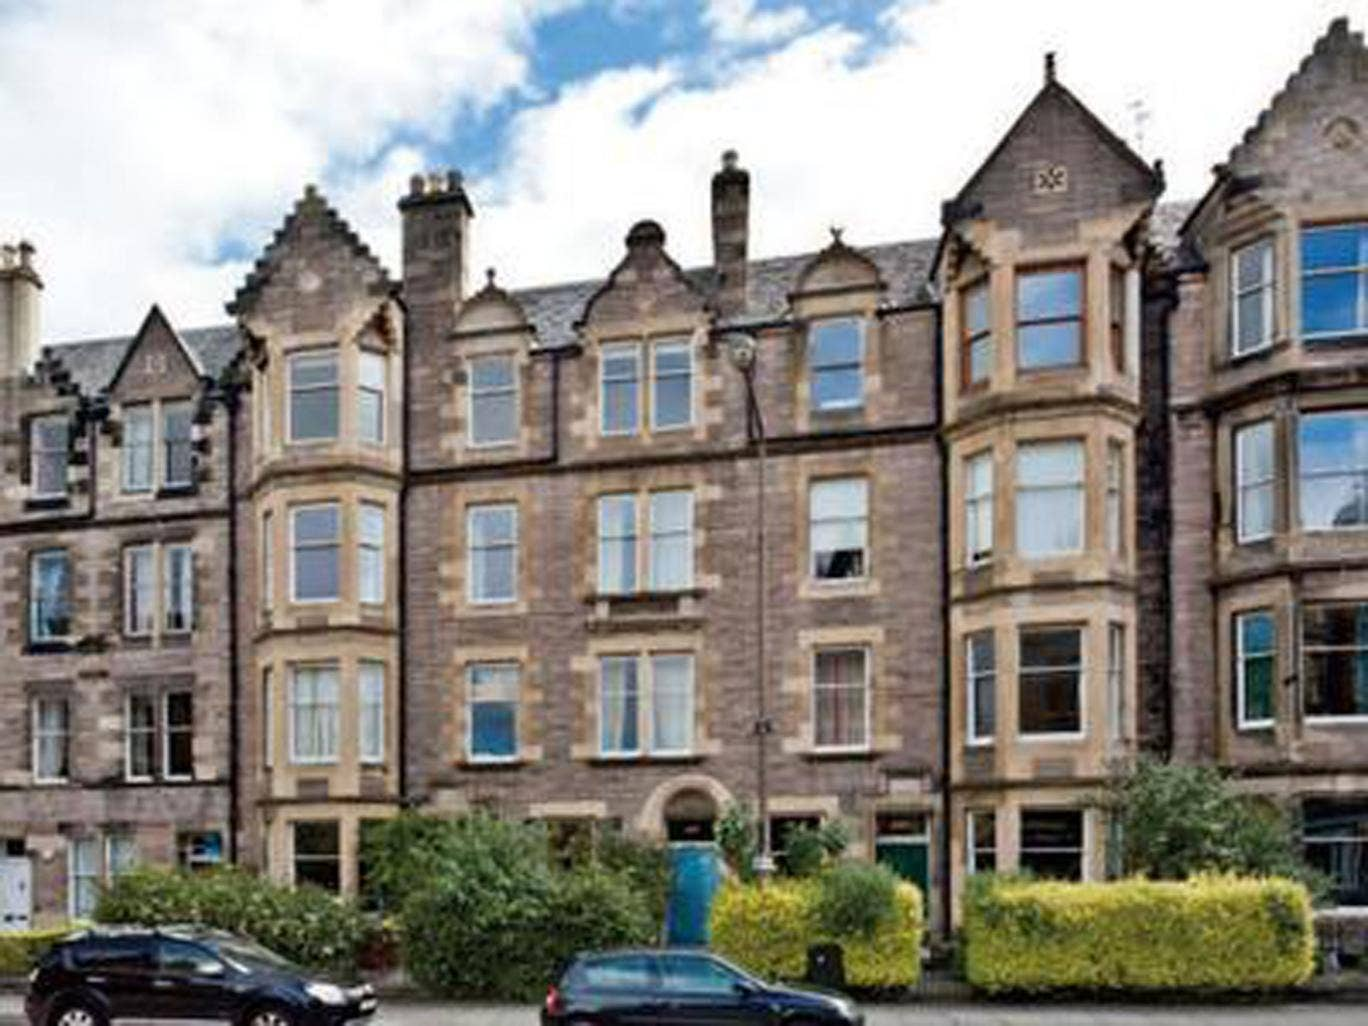 Four bedroom flat to rent in Marchmont Road, Edinburgh EH9. On with Grant Property for £900 pcm (£208 pw)